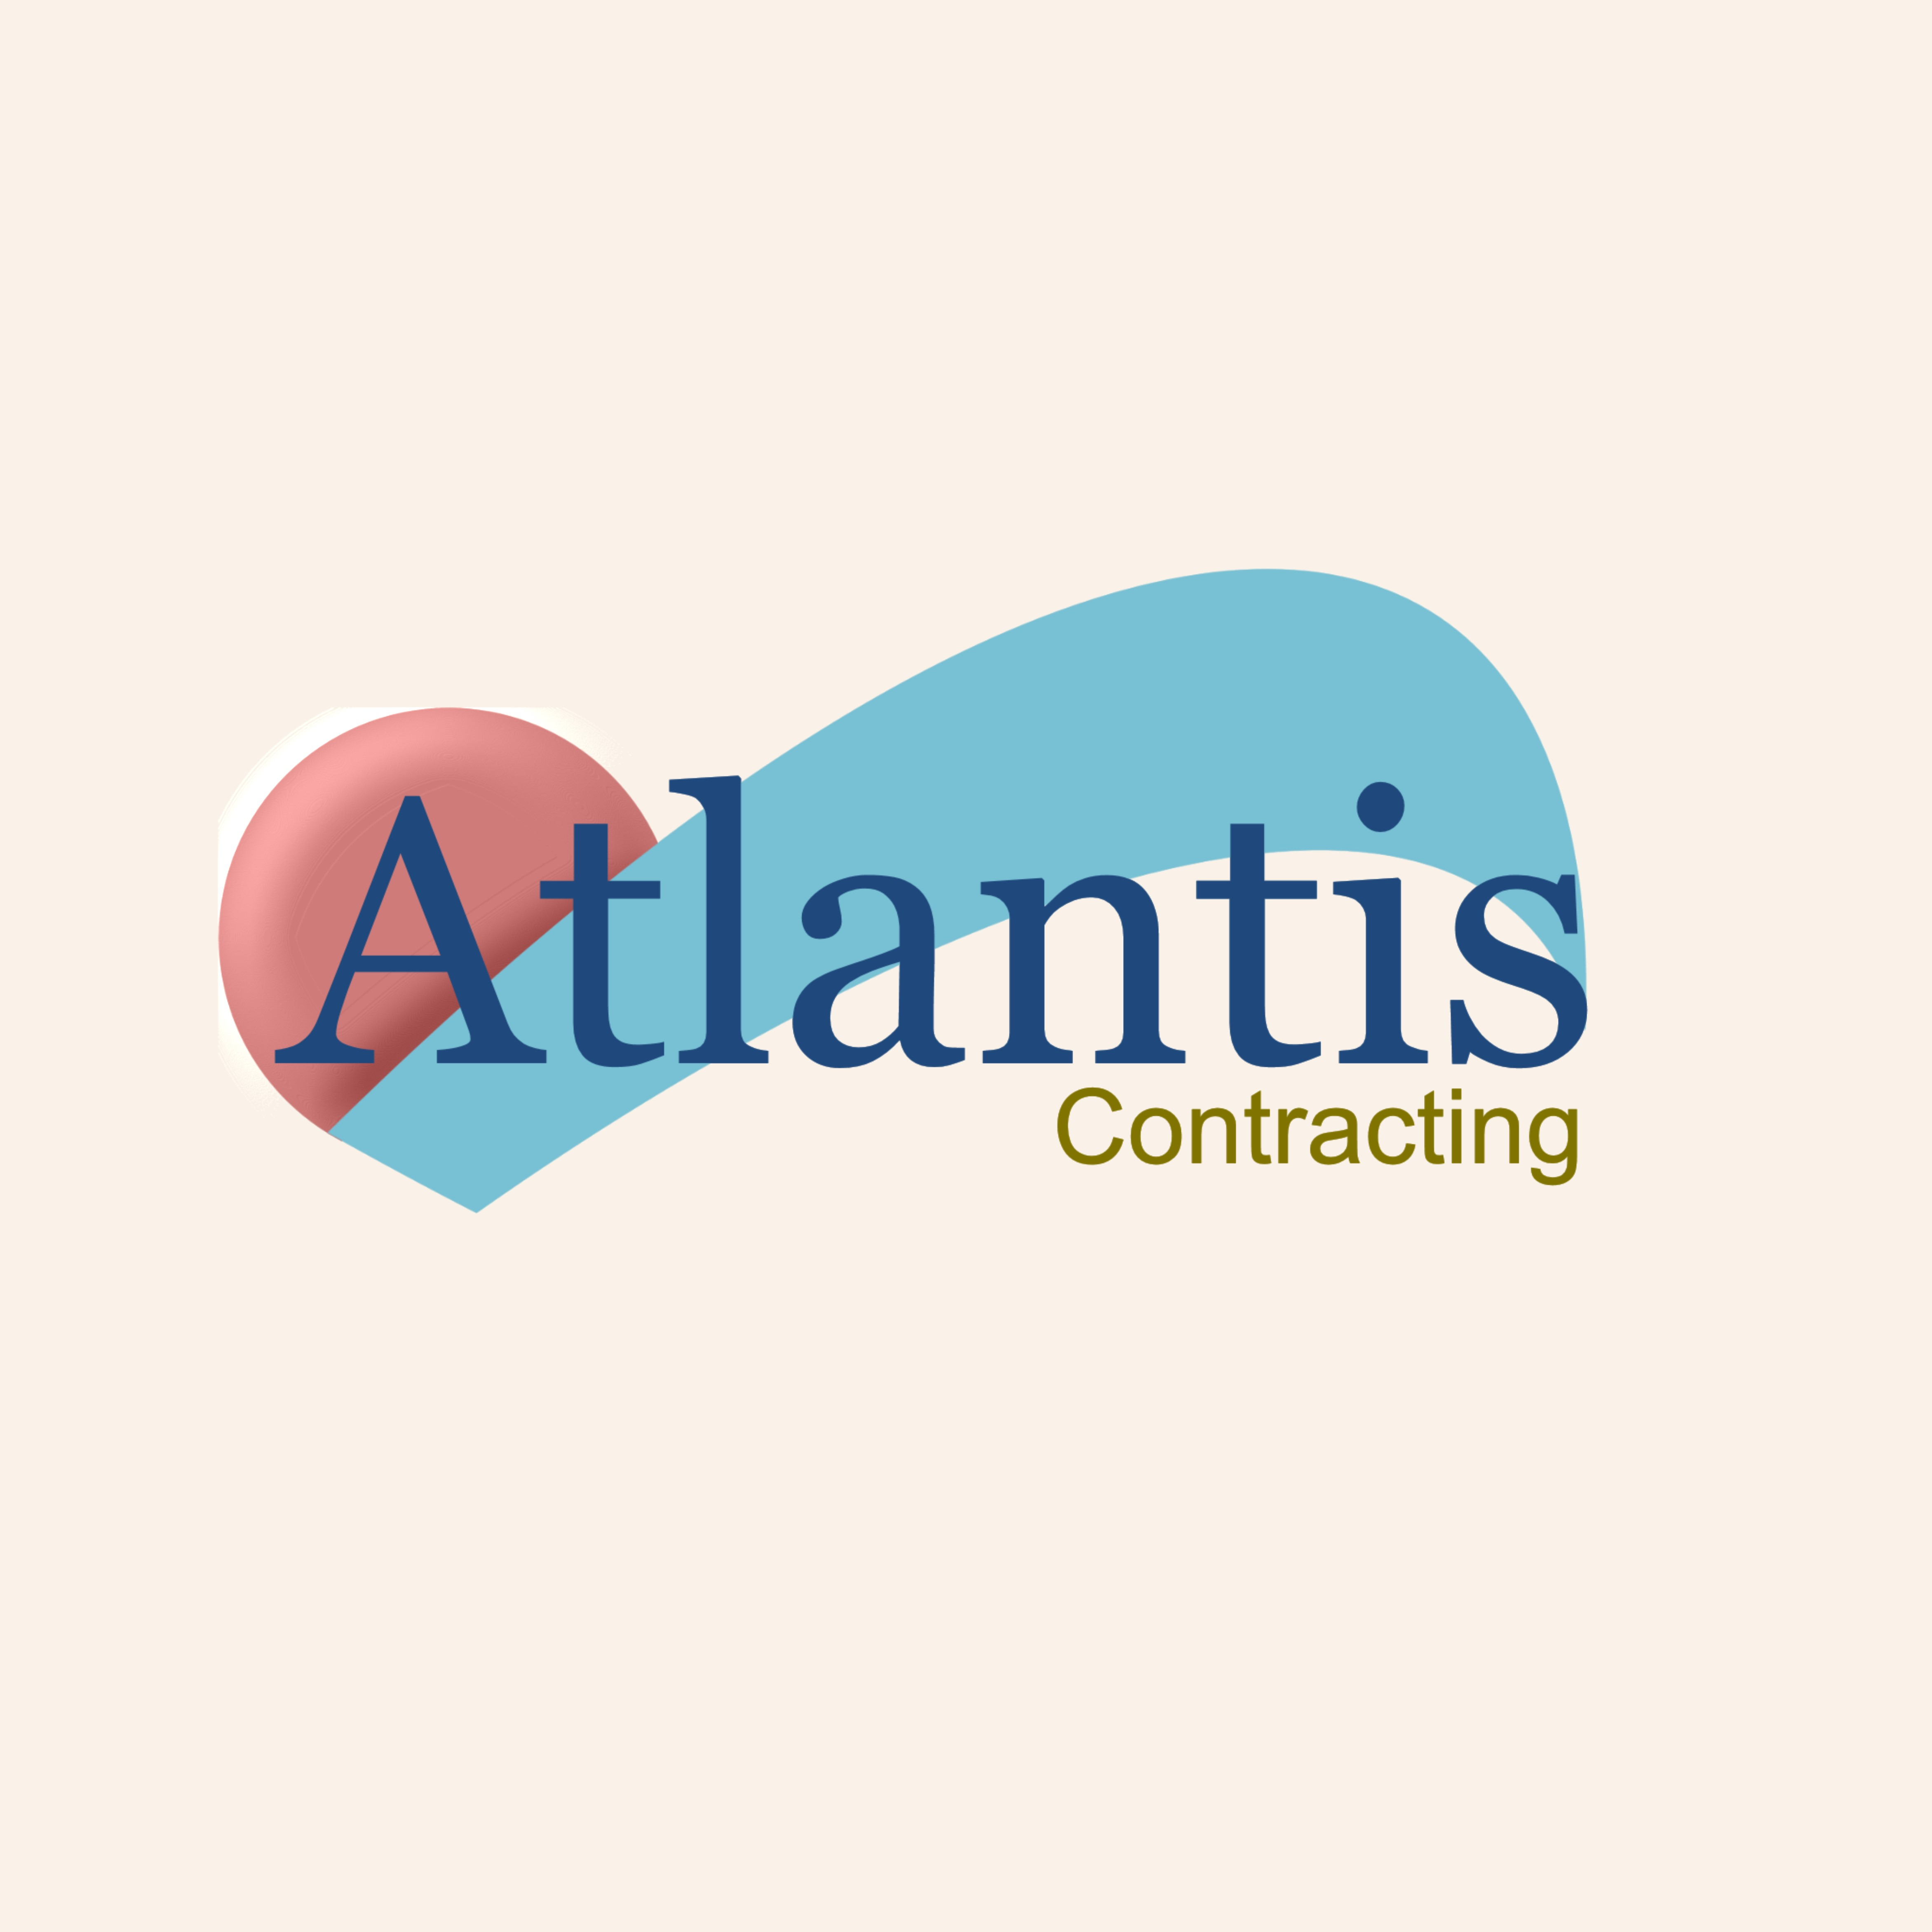 ATLANTIS CONTRACTING LTD